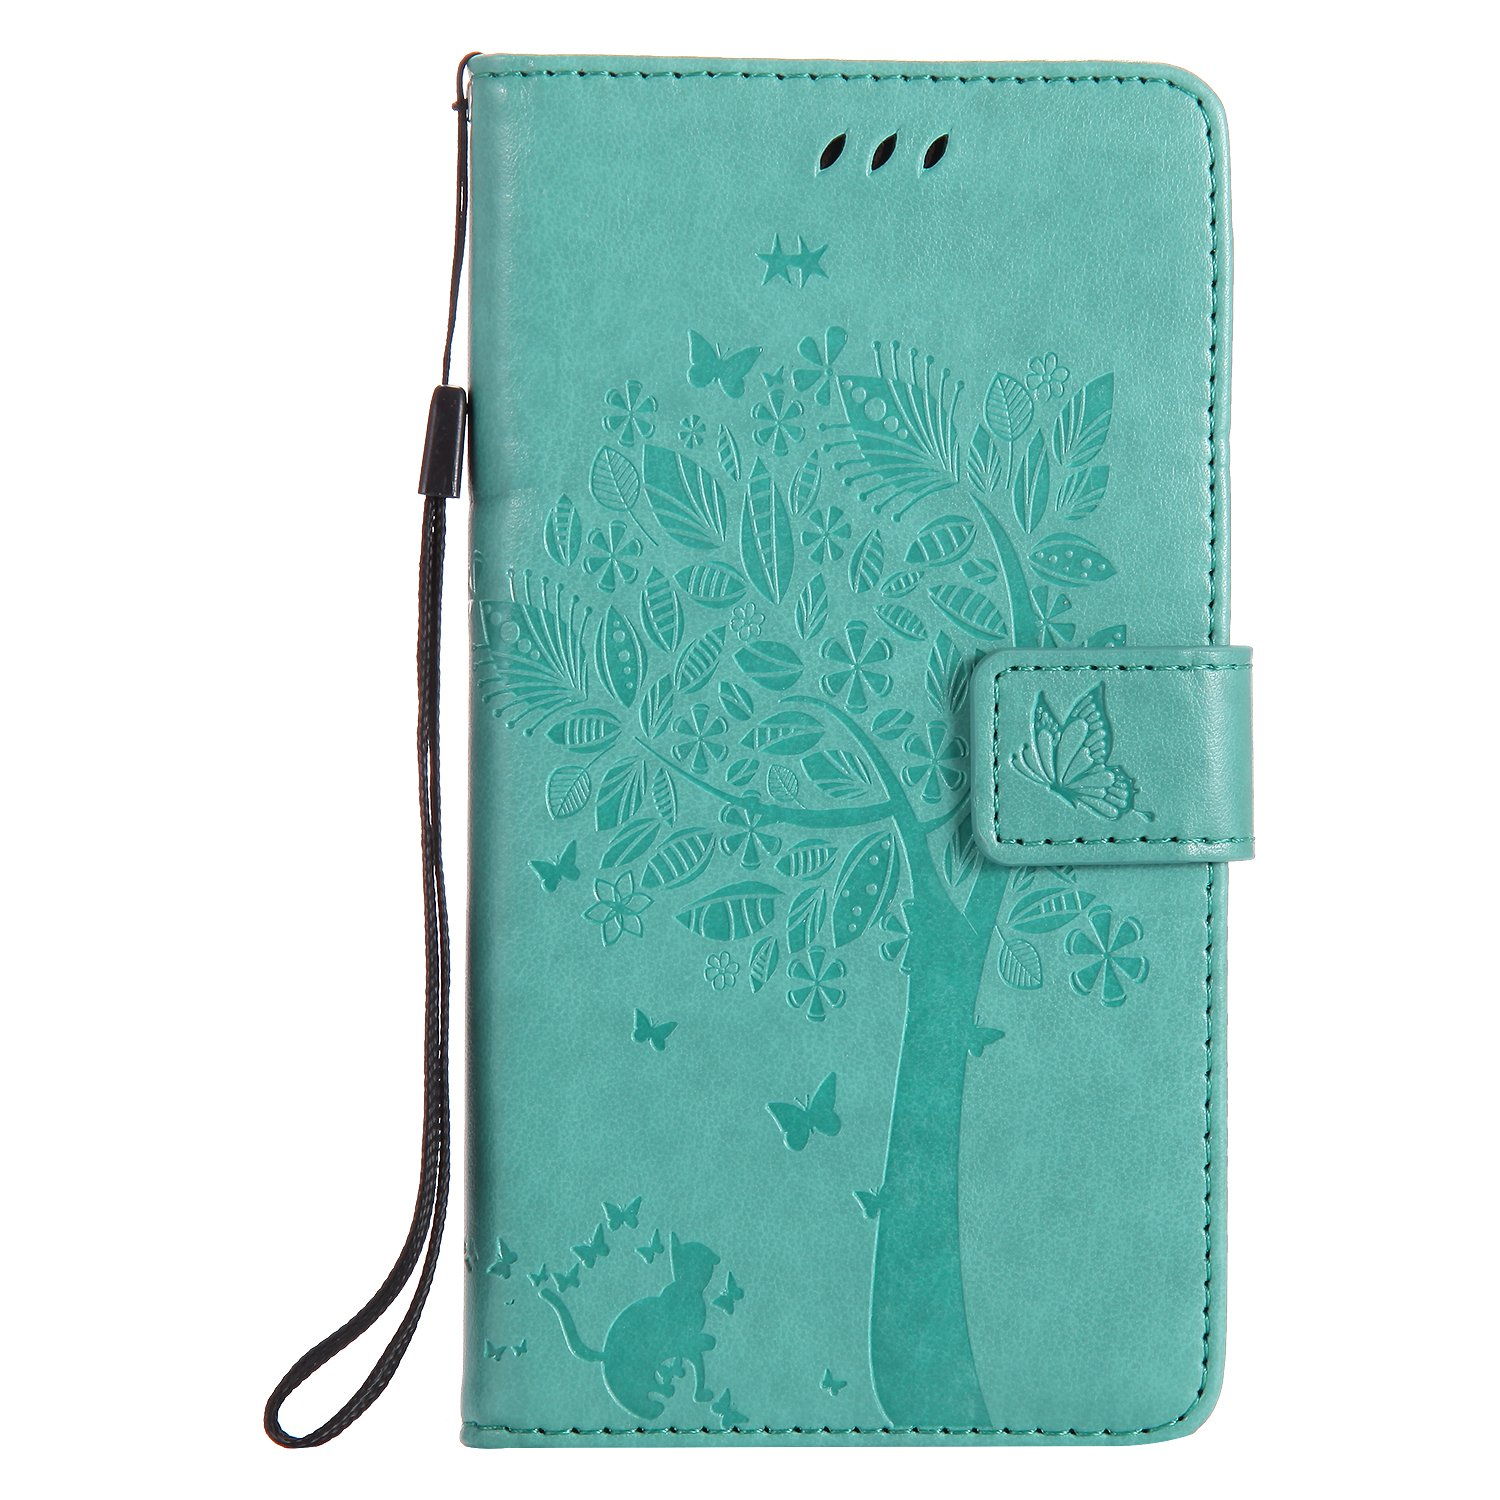 NOMO Moto Z Force Case,Moto Z Force Wallet Case,Moto Z Force Flip Case PU Leather Emboss Tree Cat Flowers Folio Magnetic Kickstand Cover with Card Slots for Motorola Moto Z Force Teal